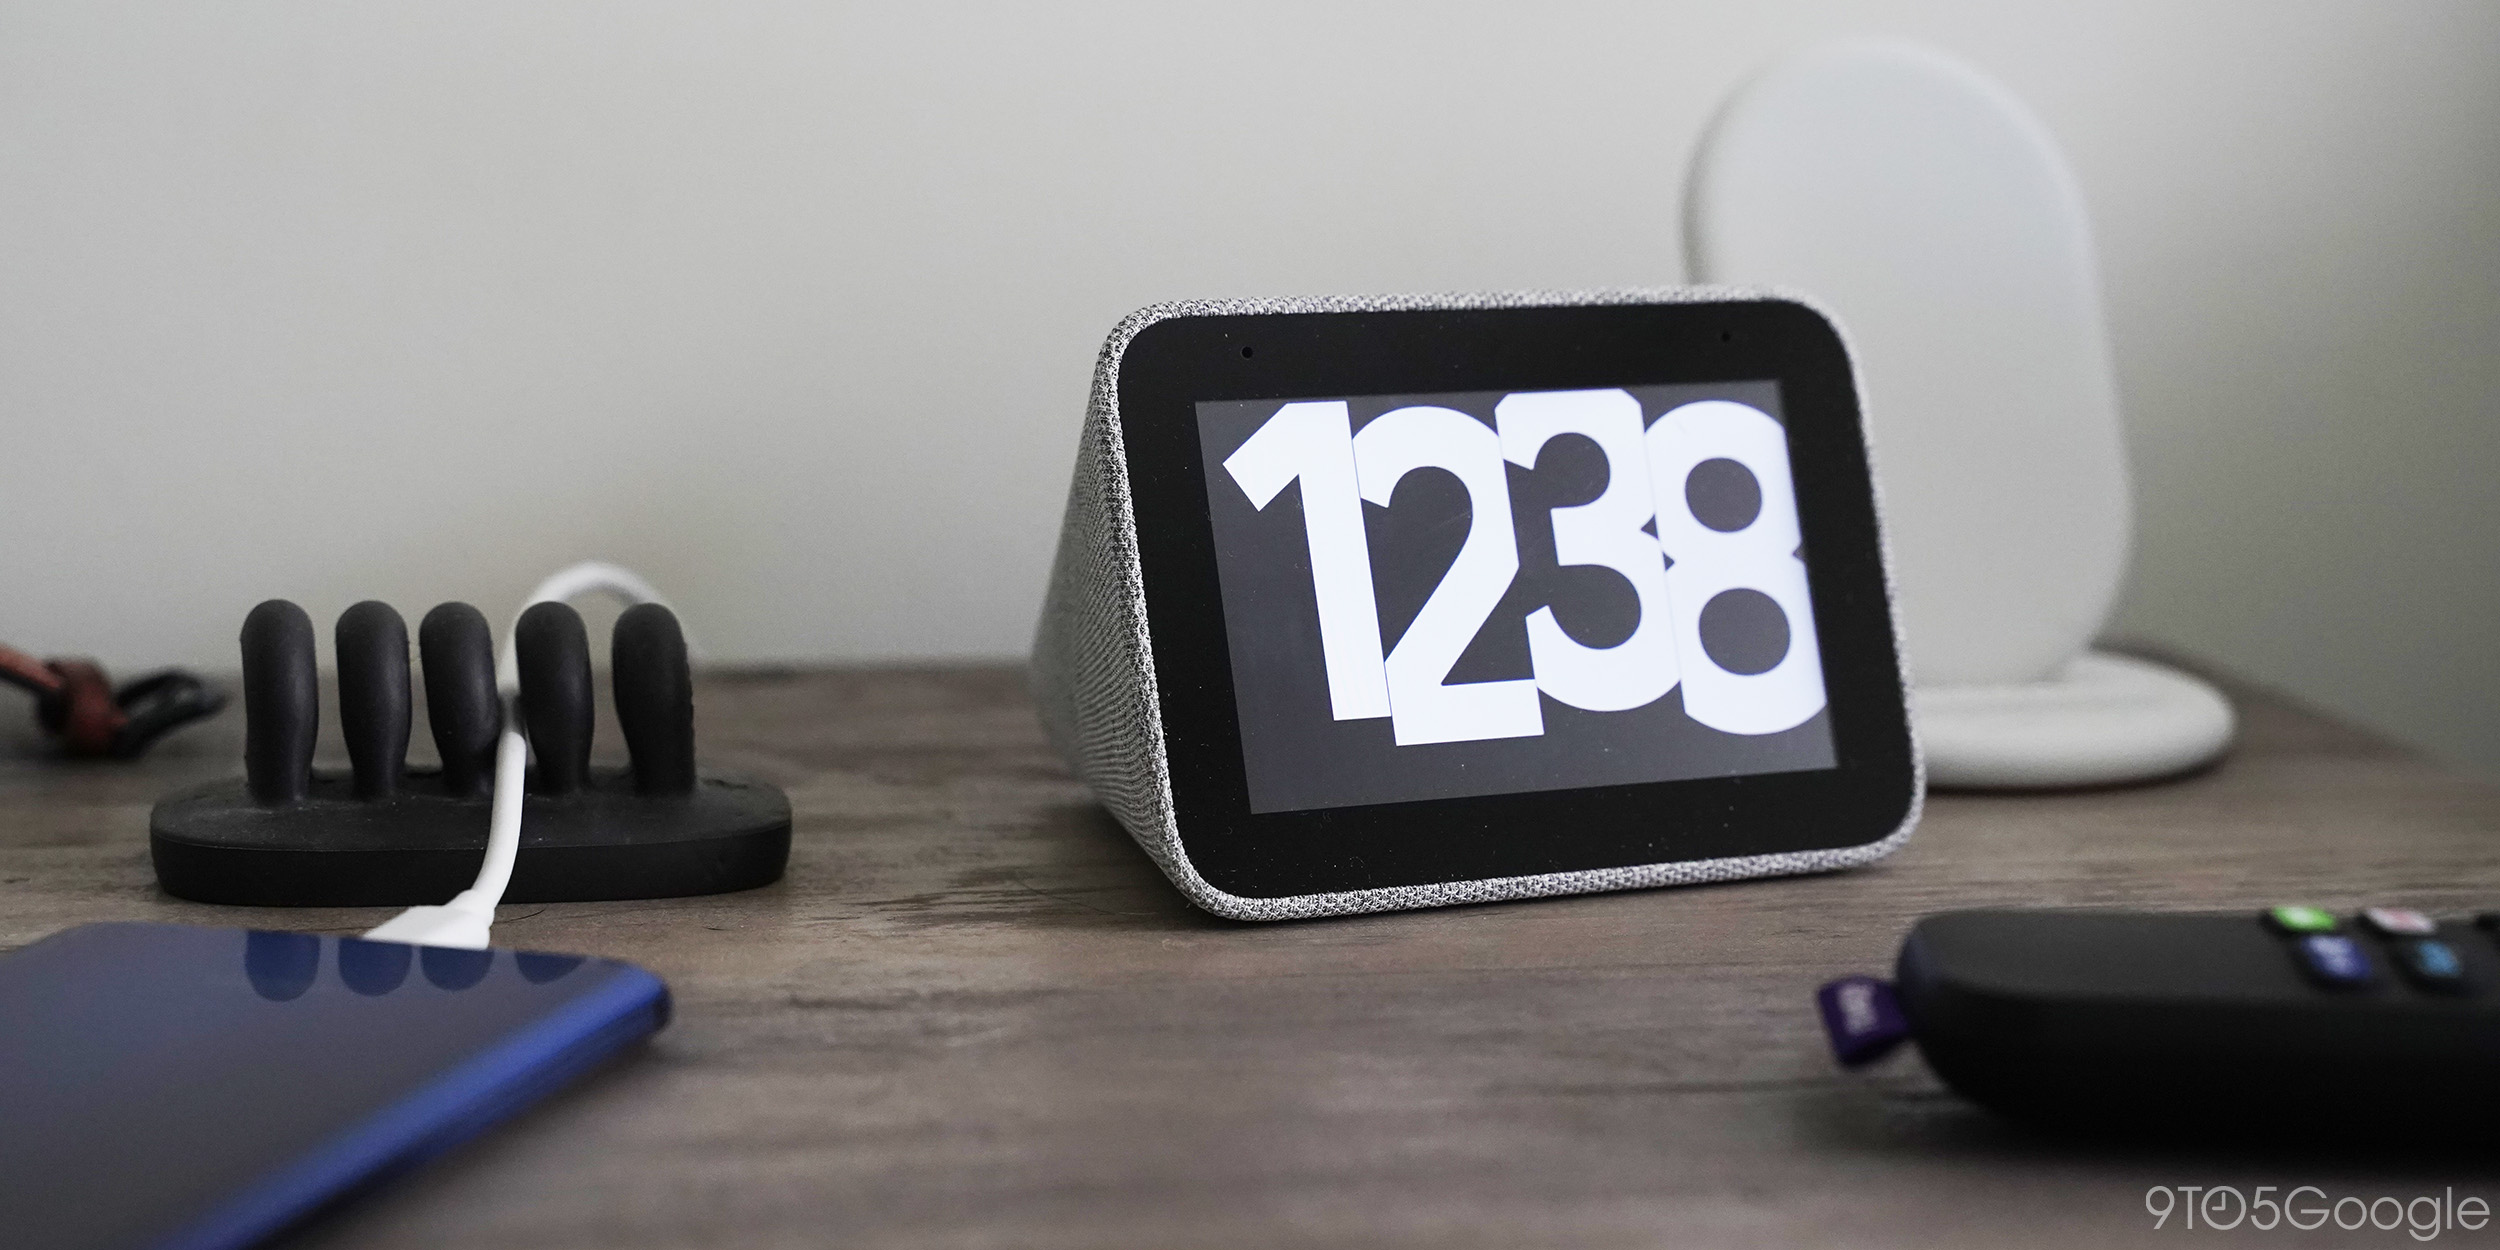 lenovo smart clock google assistant display bedroom table